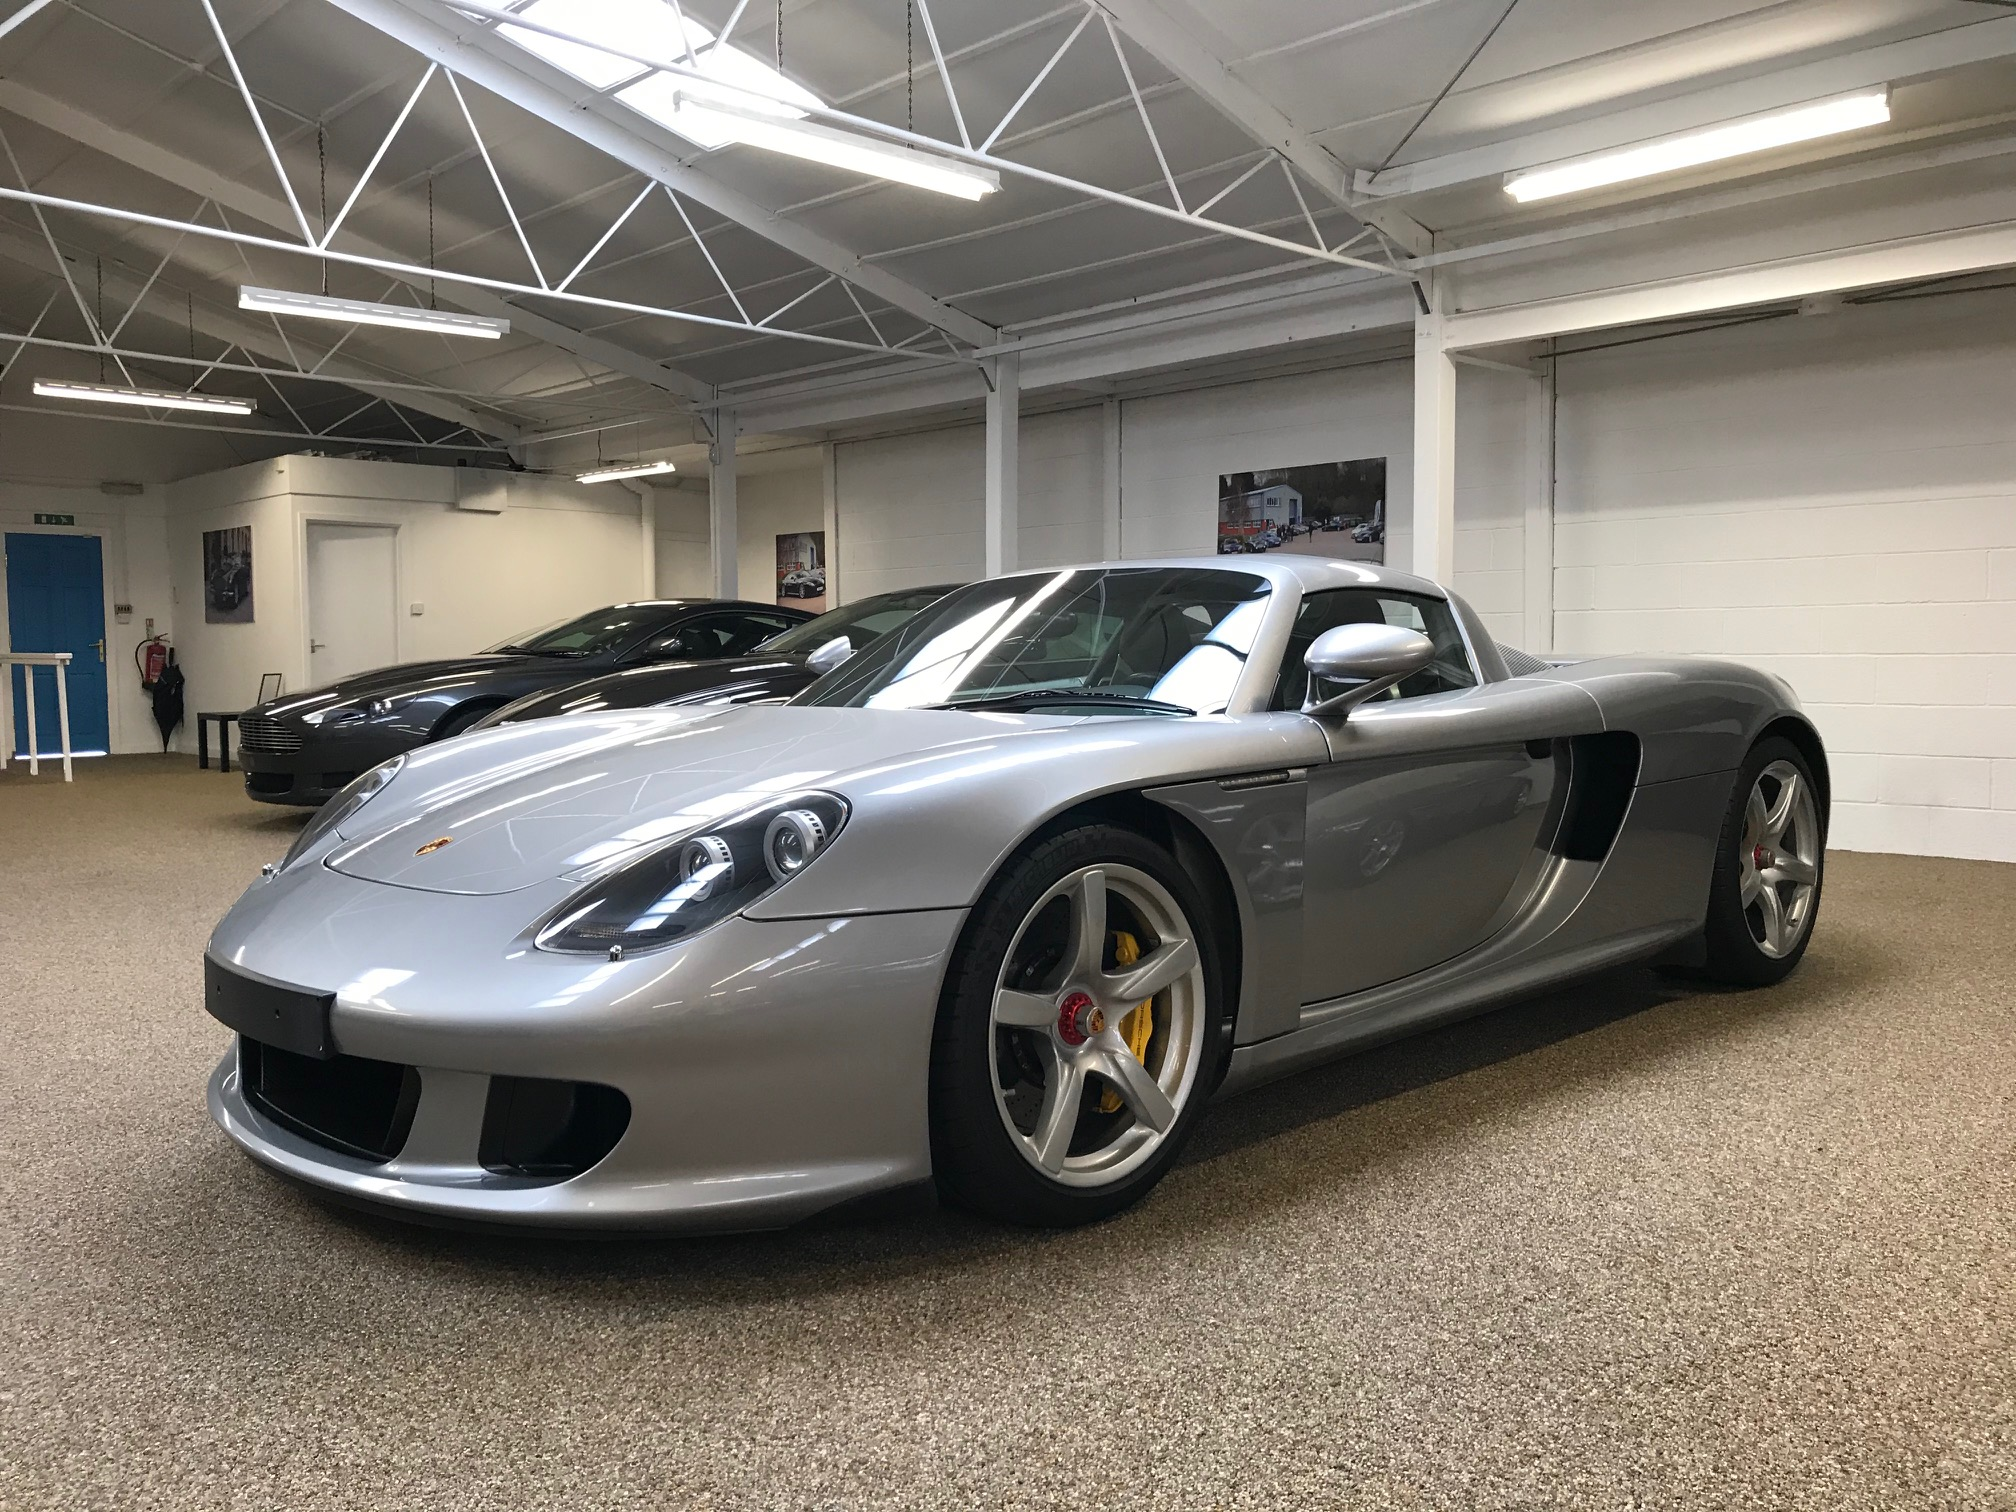 Porsche Carrera GT for sale